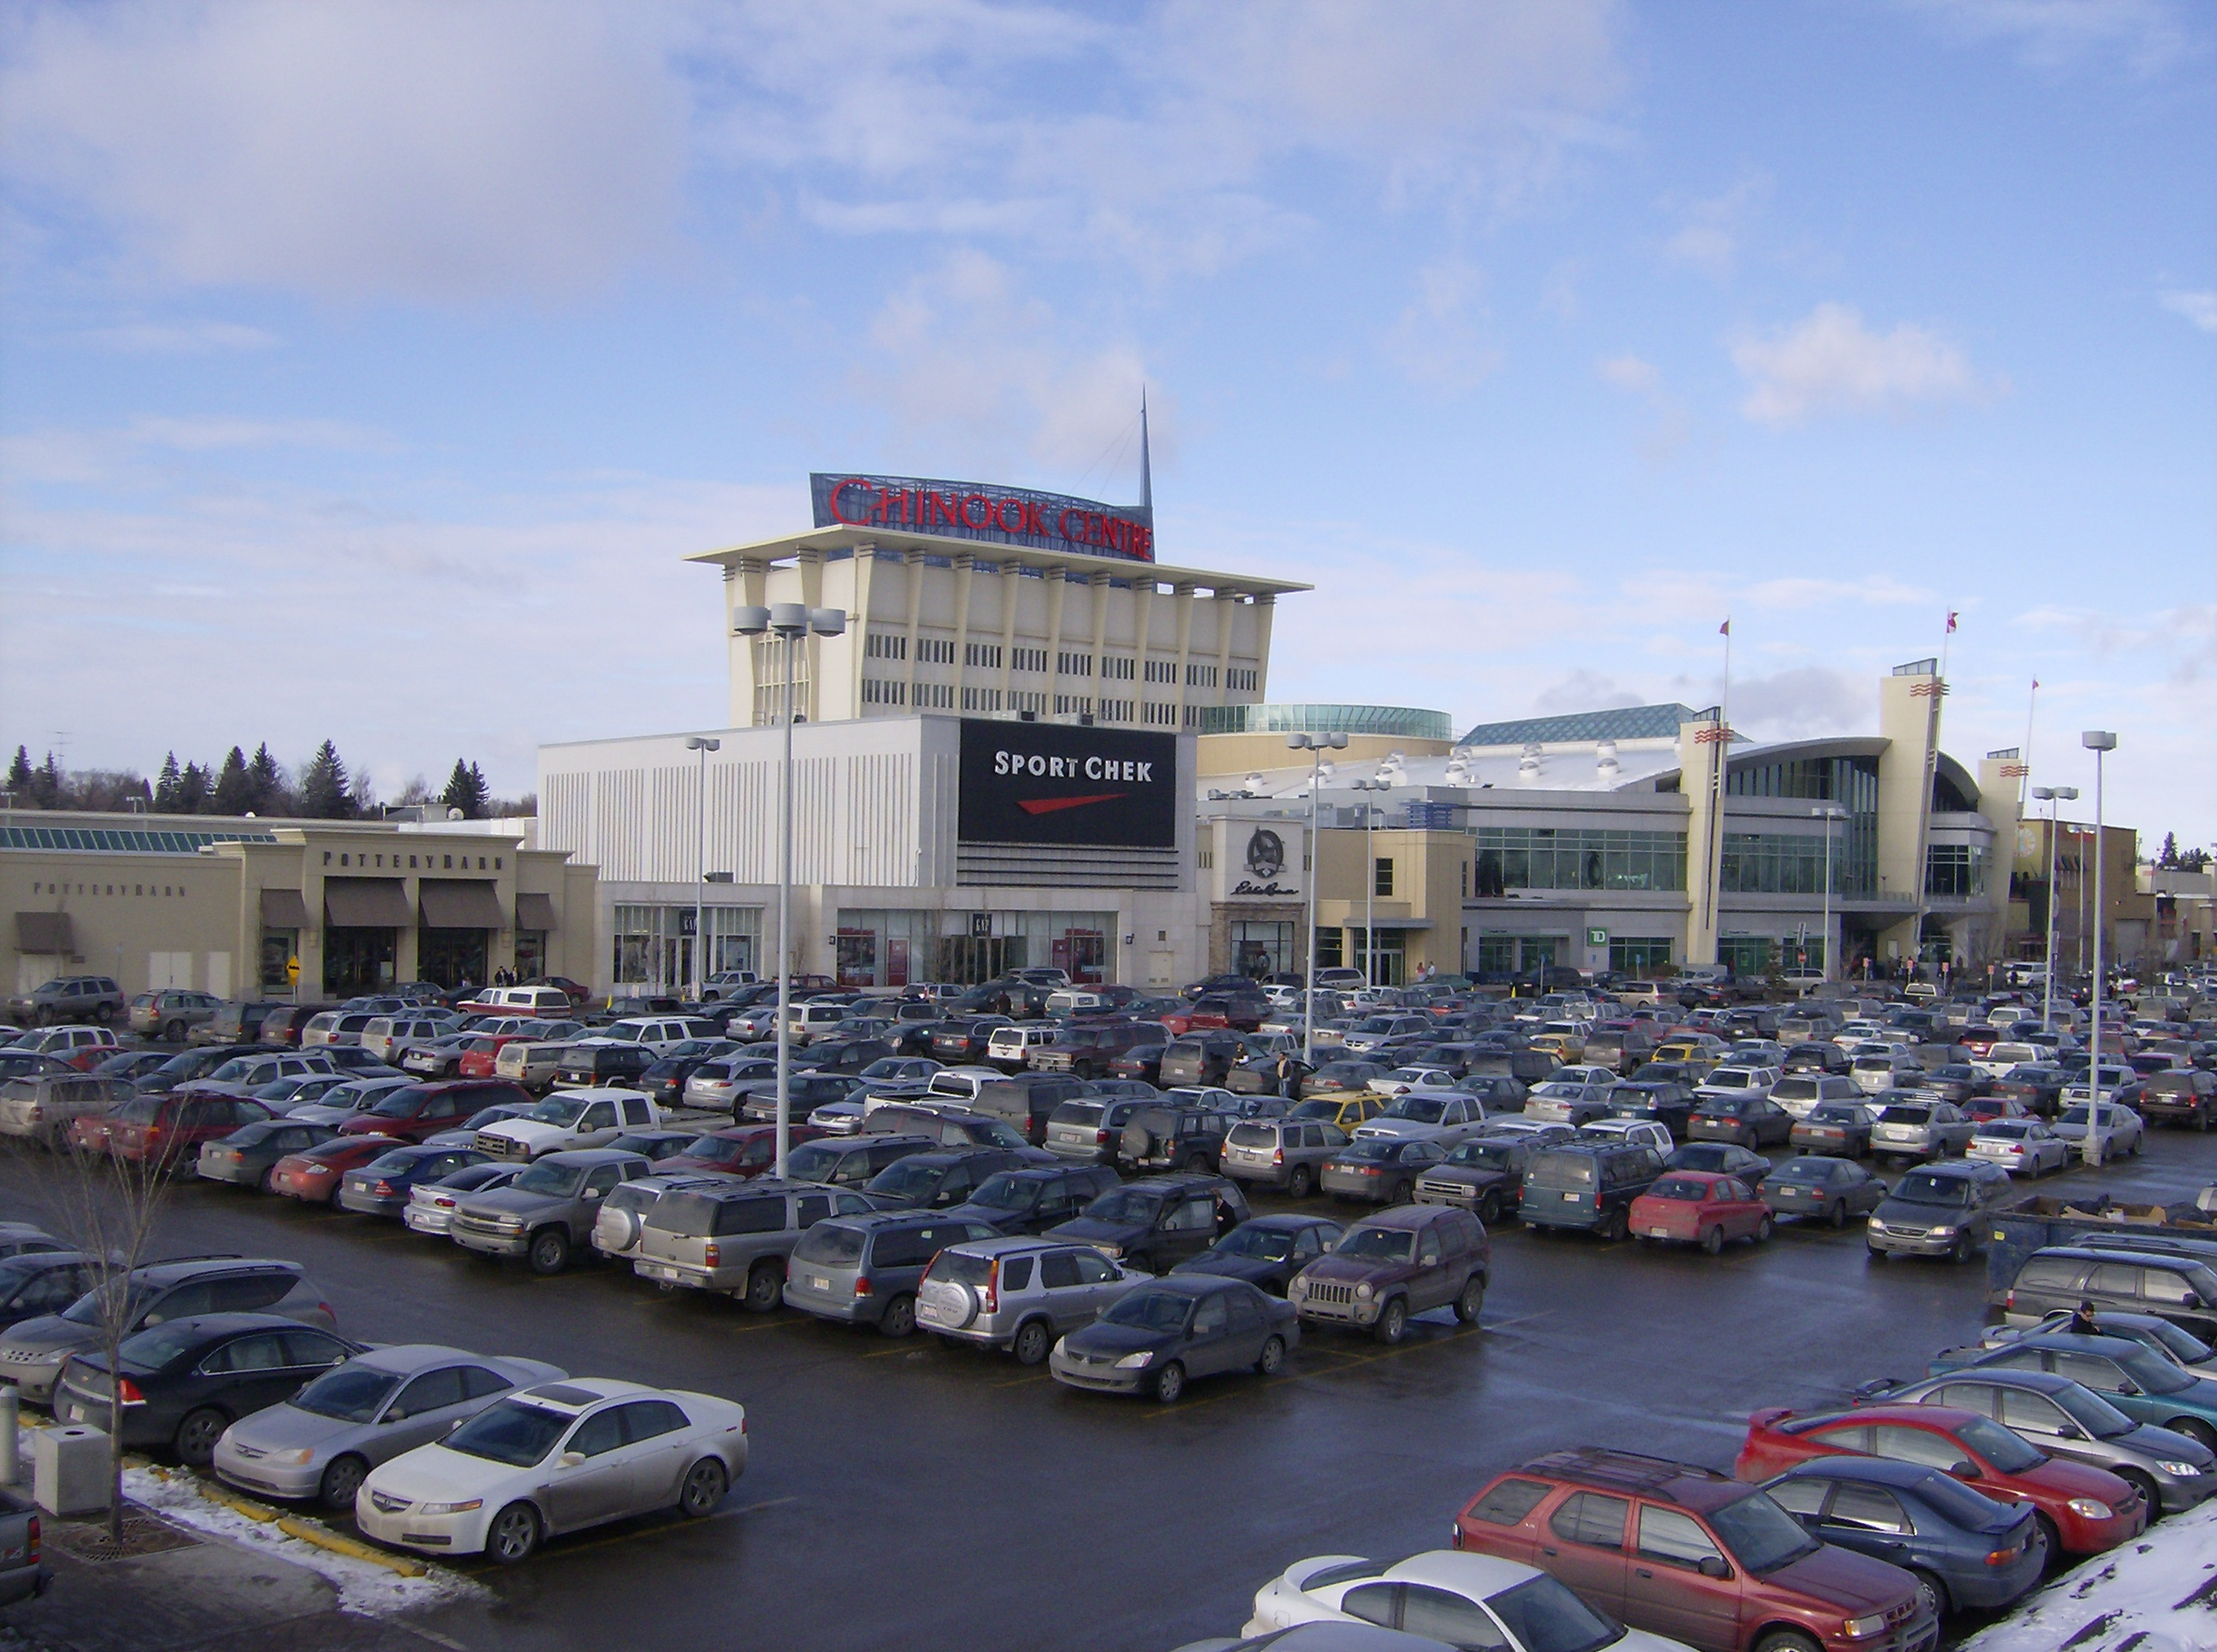 File:Chinook Centre 6.jpg - Wikipedia, the free encyclopedia